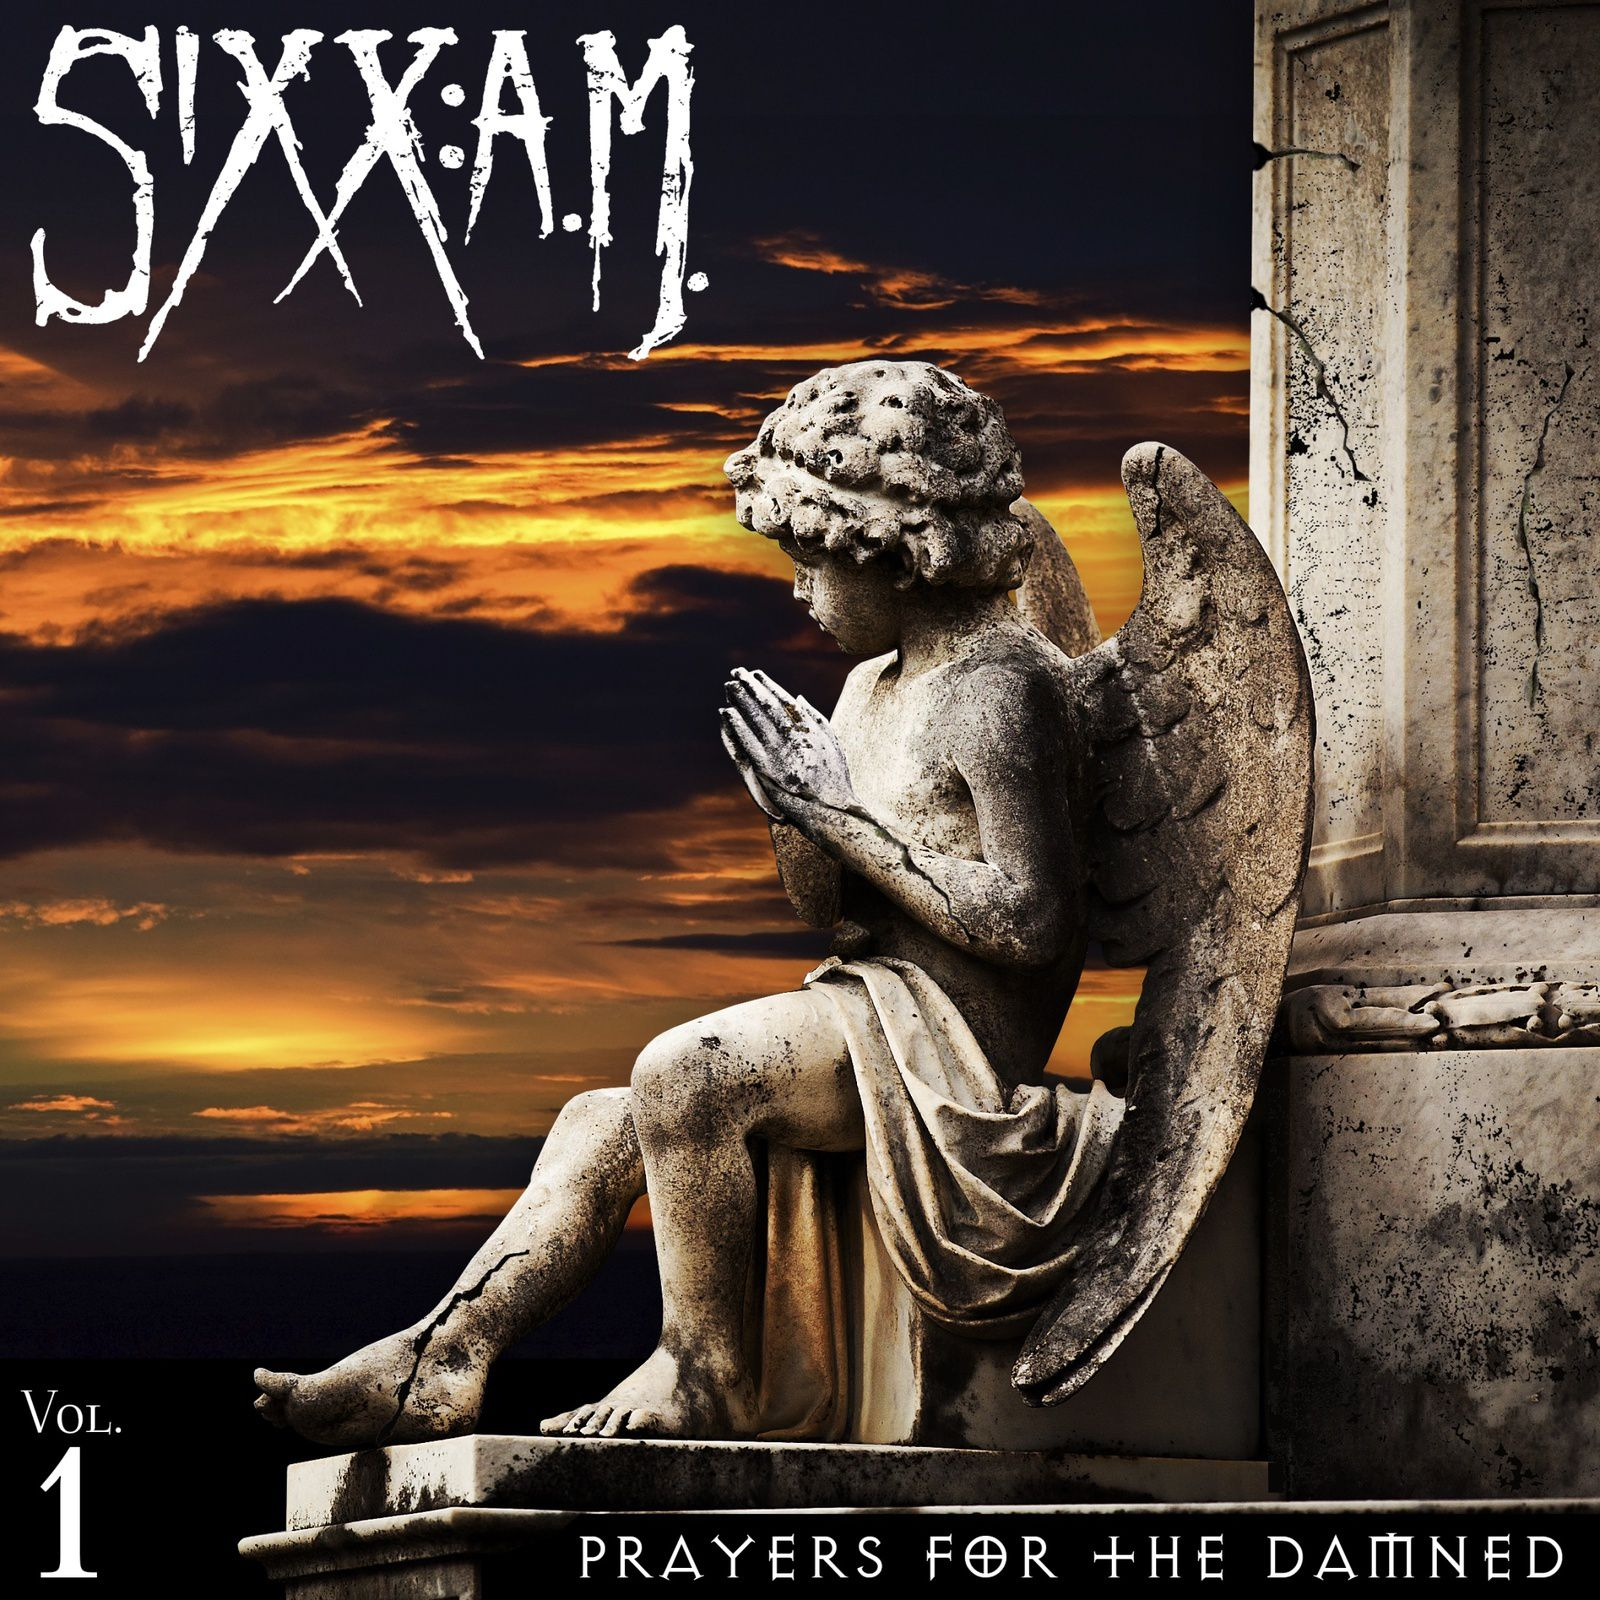 Rock Reviews dirt image: http://img.over-blog-kiwi.com/0/64/23/38/20160421/ob_1907a1_sixxam-cd-cover2016.jpg